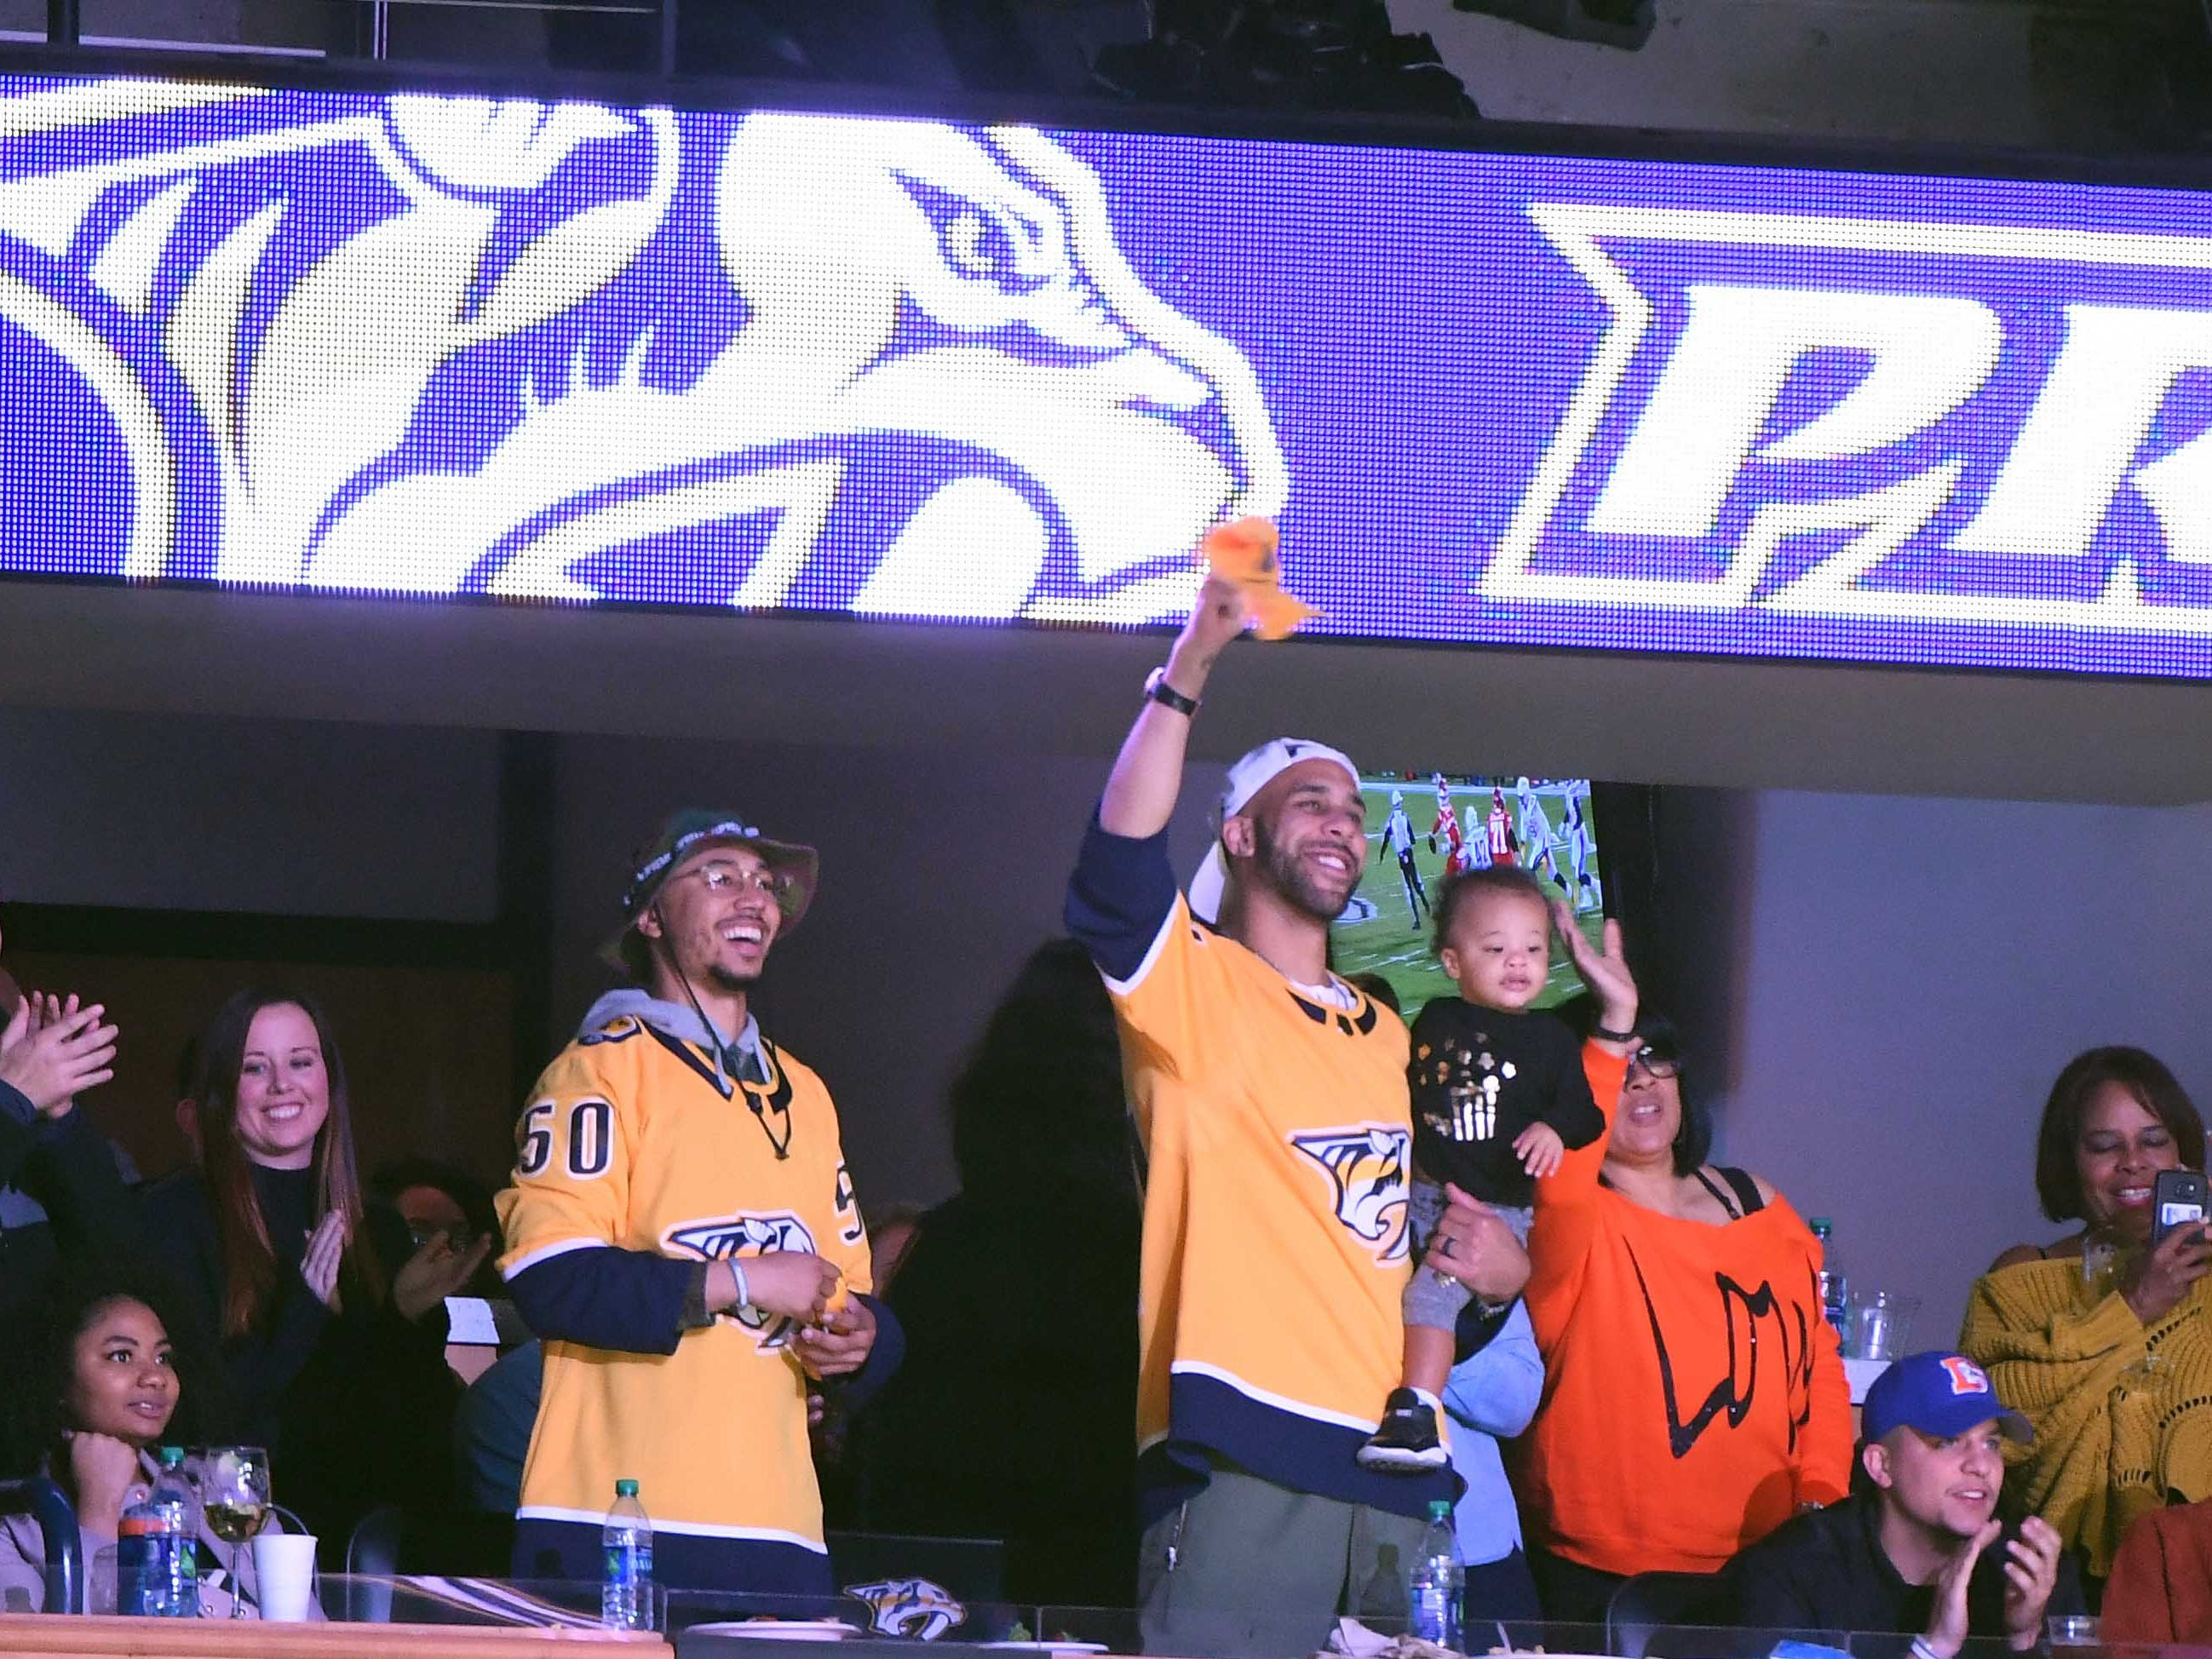 Dec. 13: Boston Red Sox players Mookie Betts (left) and David Price are recognized during the first period of the Nashville Predators game against the Vancouver Canucks.